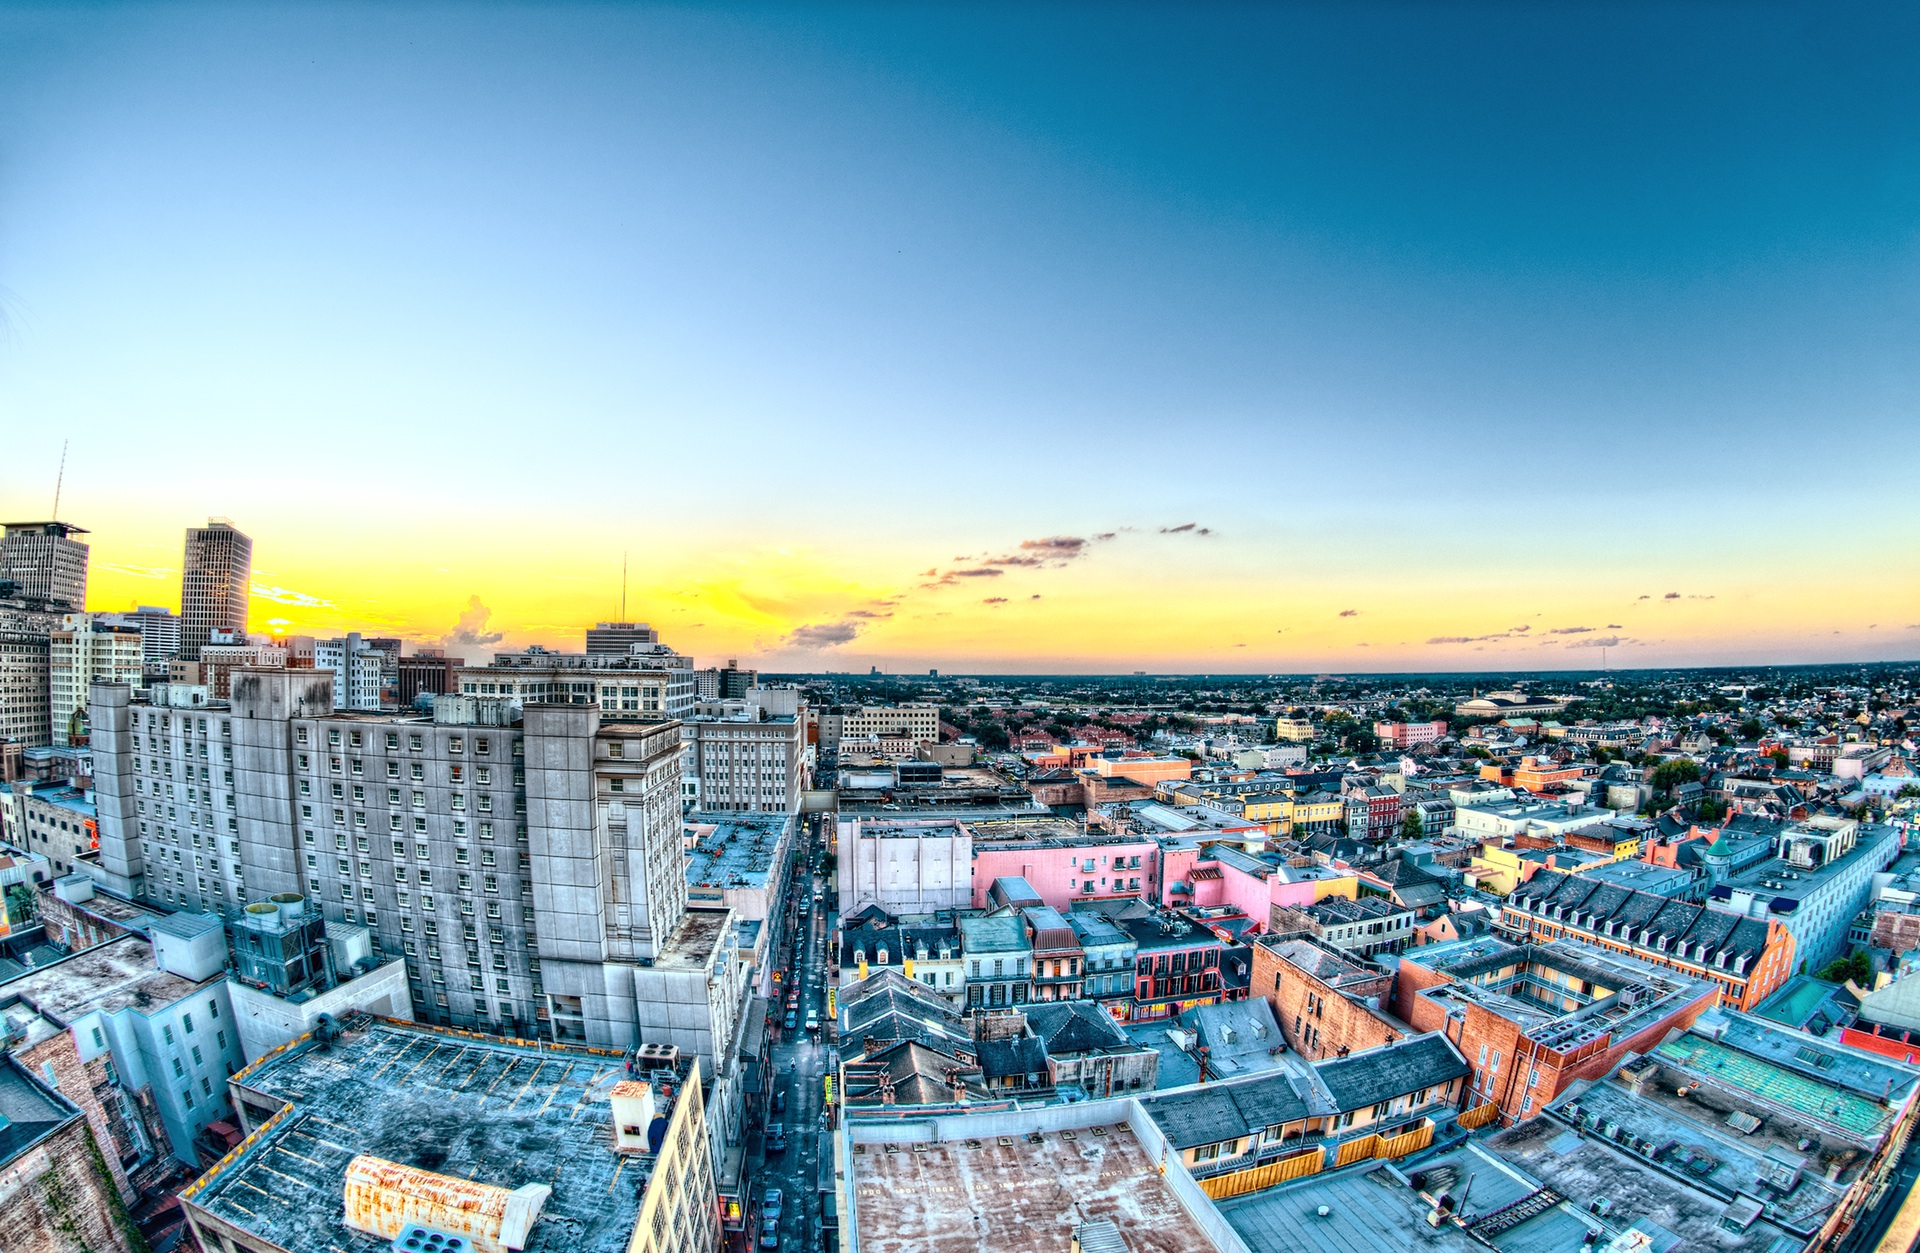 Looking Over New Orleans - Photo by Scott Webb